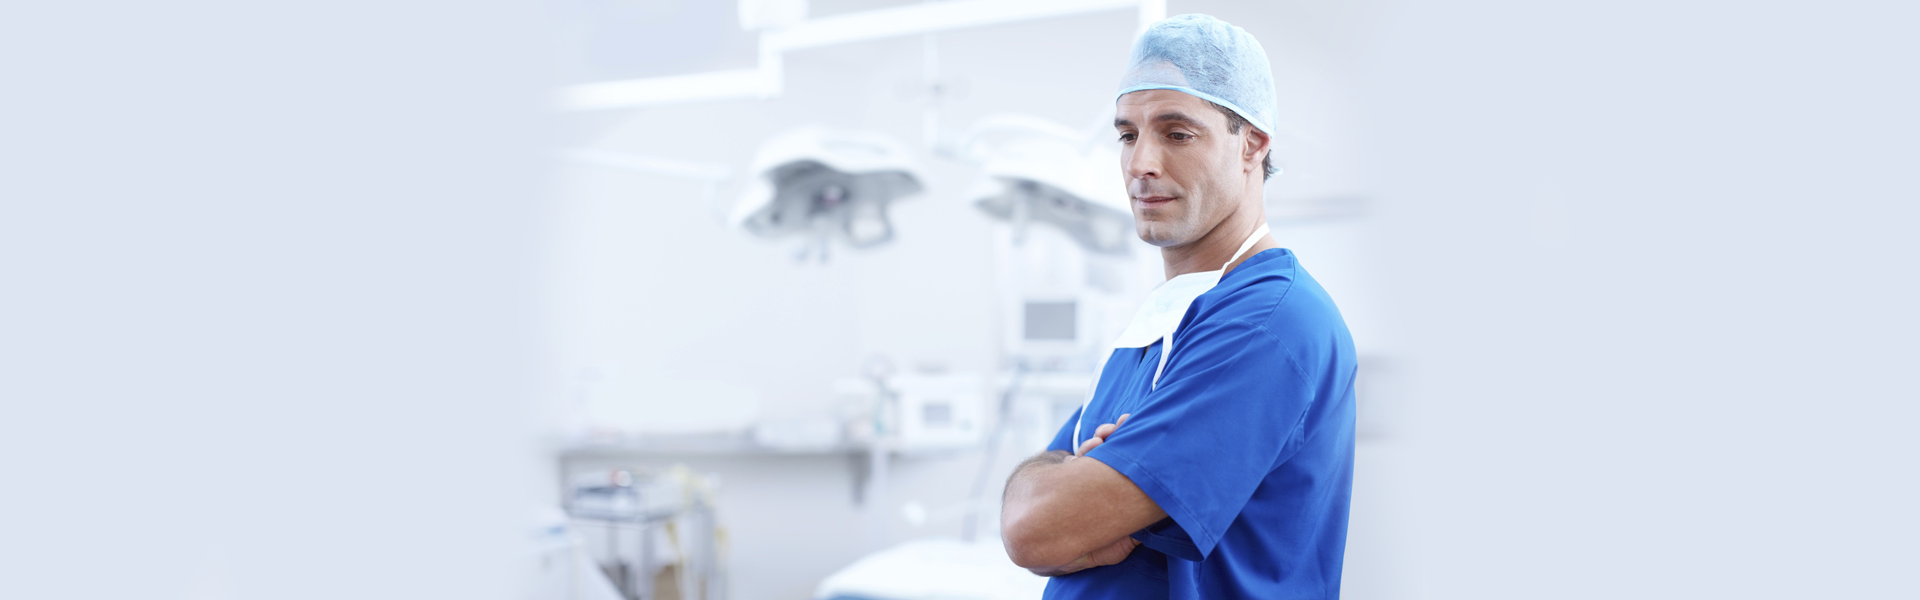 6 leadership qualities all dentists should have